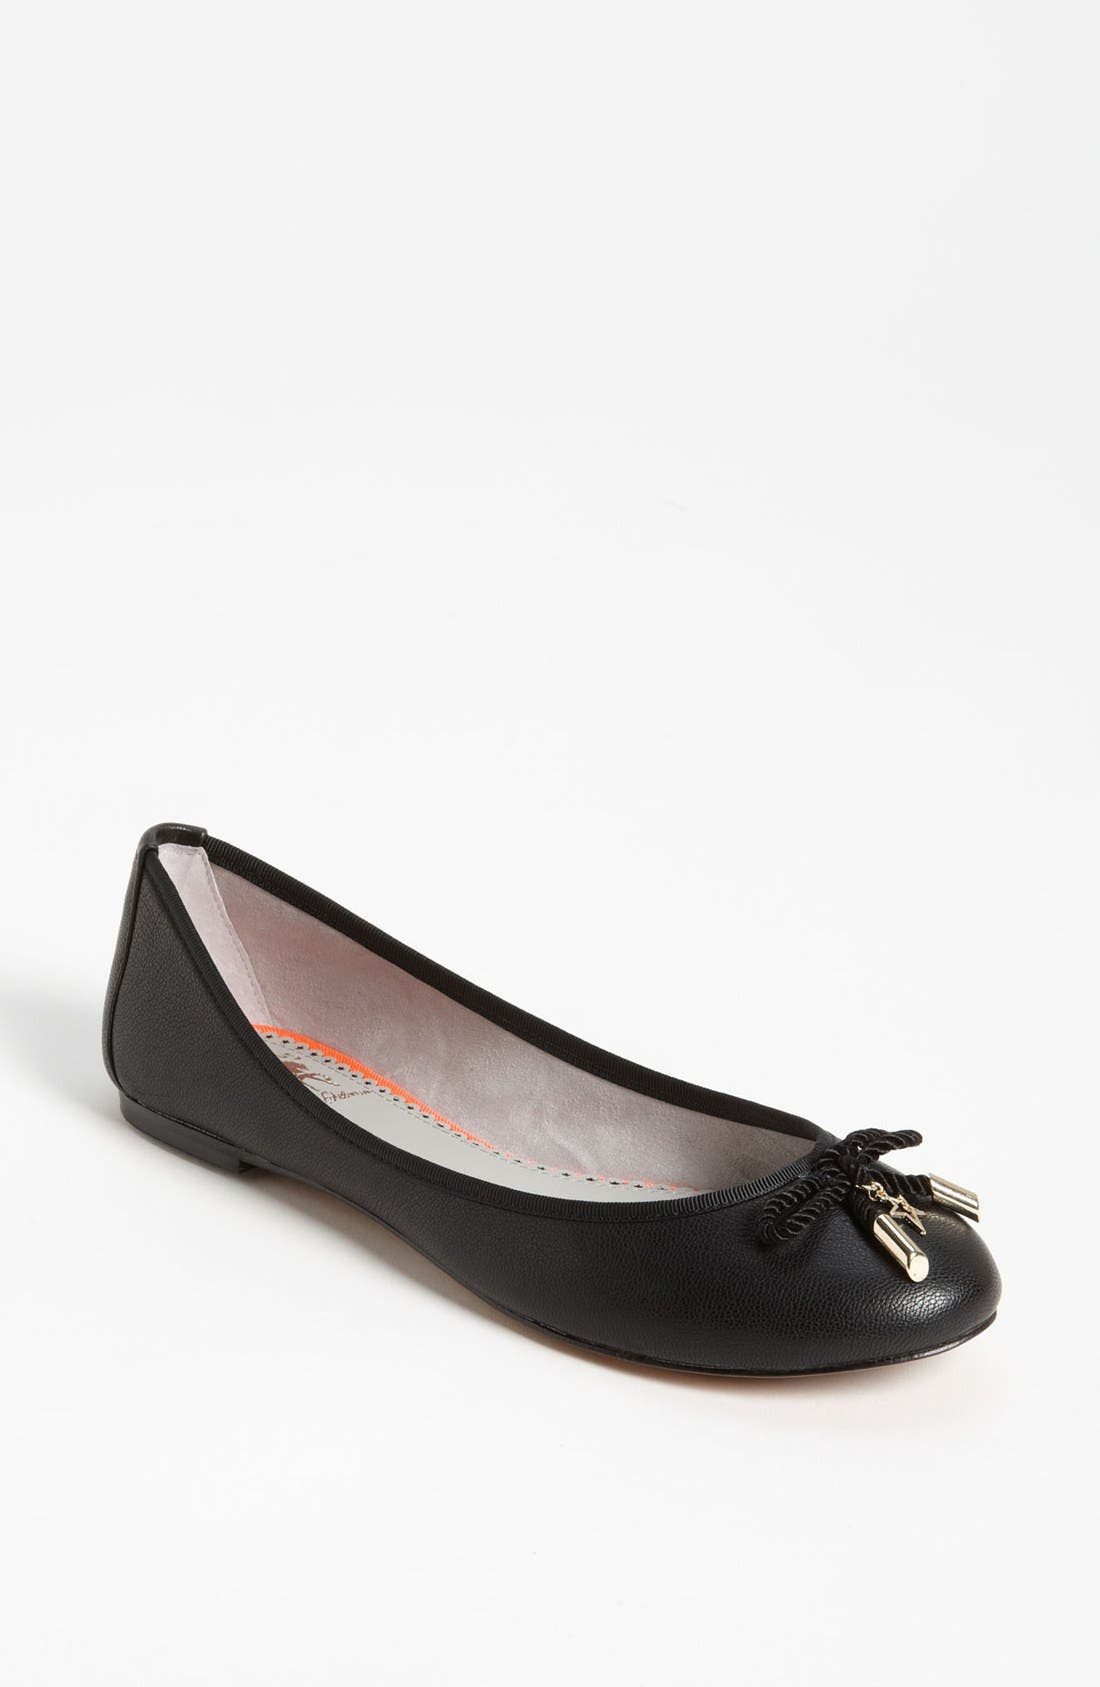 Alternate Image 1 Selected - Circus by Sam Edelman 'Ava' Flat